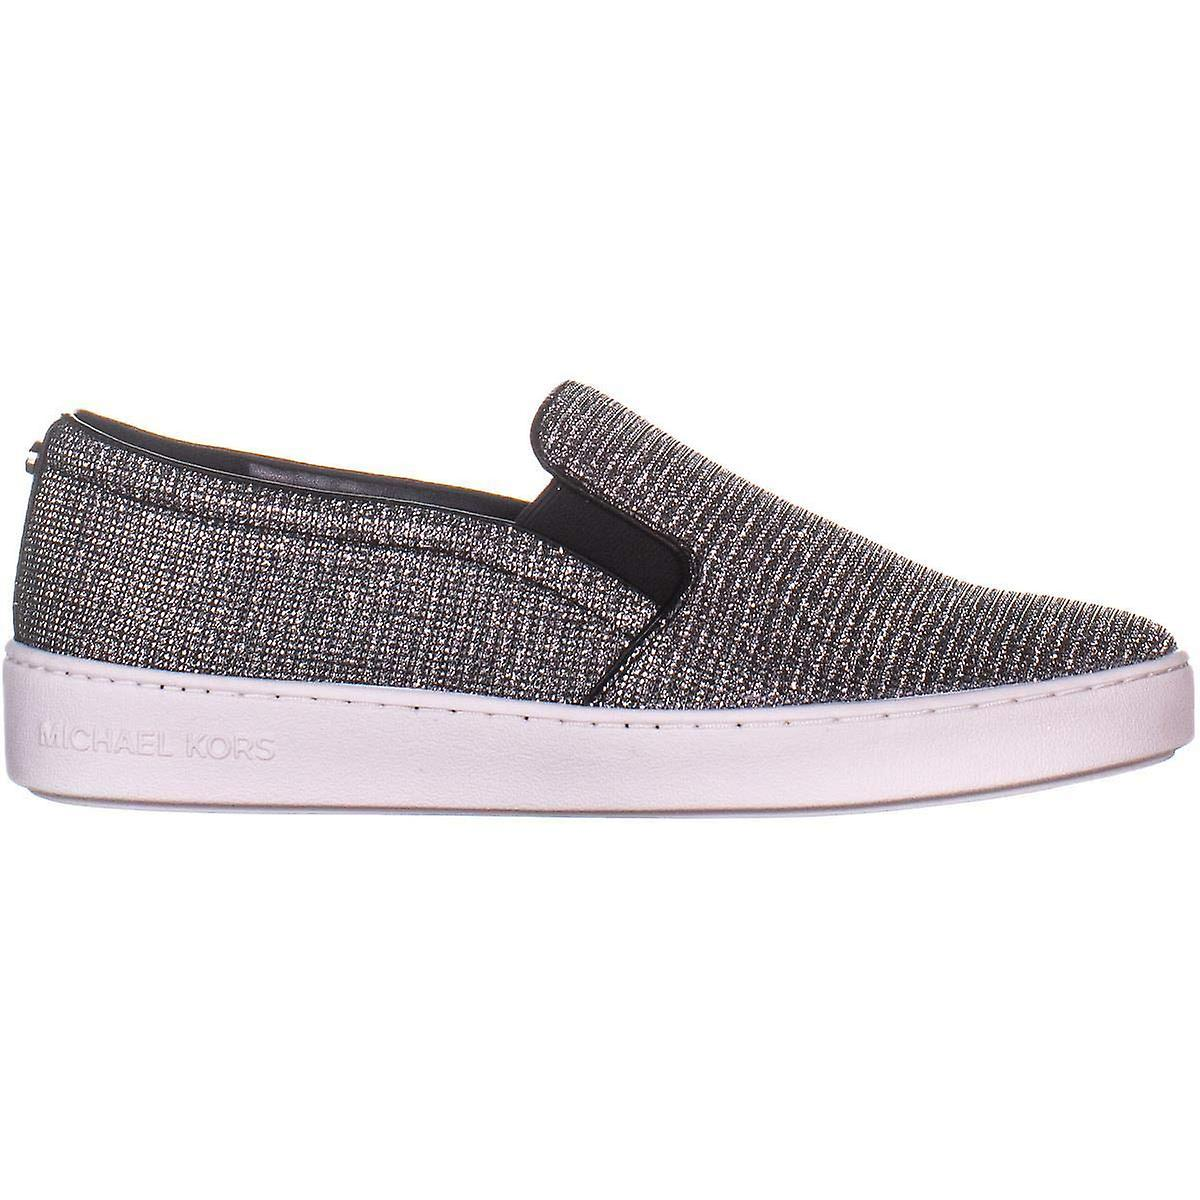 Michael Kors Womens Keaton Slip auf Stoff Low Top Slip auf Fashion Sneakers